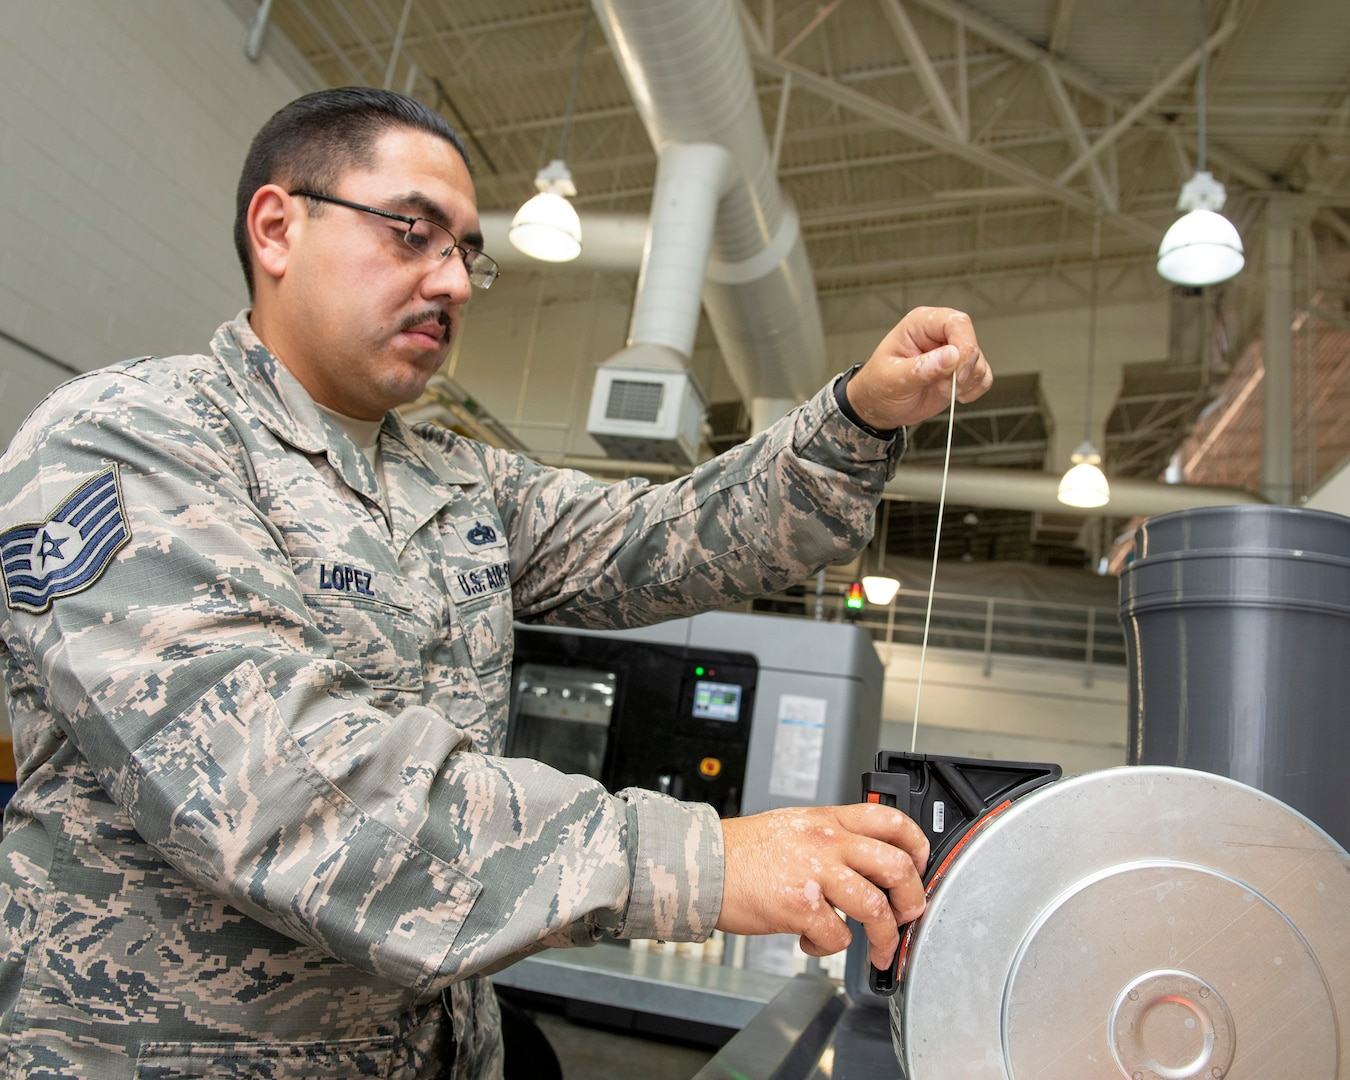 Travis AFB is the first field-unit location in the Air Force to have the Stratays F900 3-D industrial printer certified by the Federal Aviation Administration and Air Force Advanced Technology and Training Center for use on aircraft replacement parts. (U.S. Air Force photo by Louis Briscese)